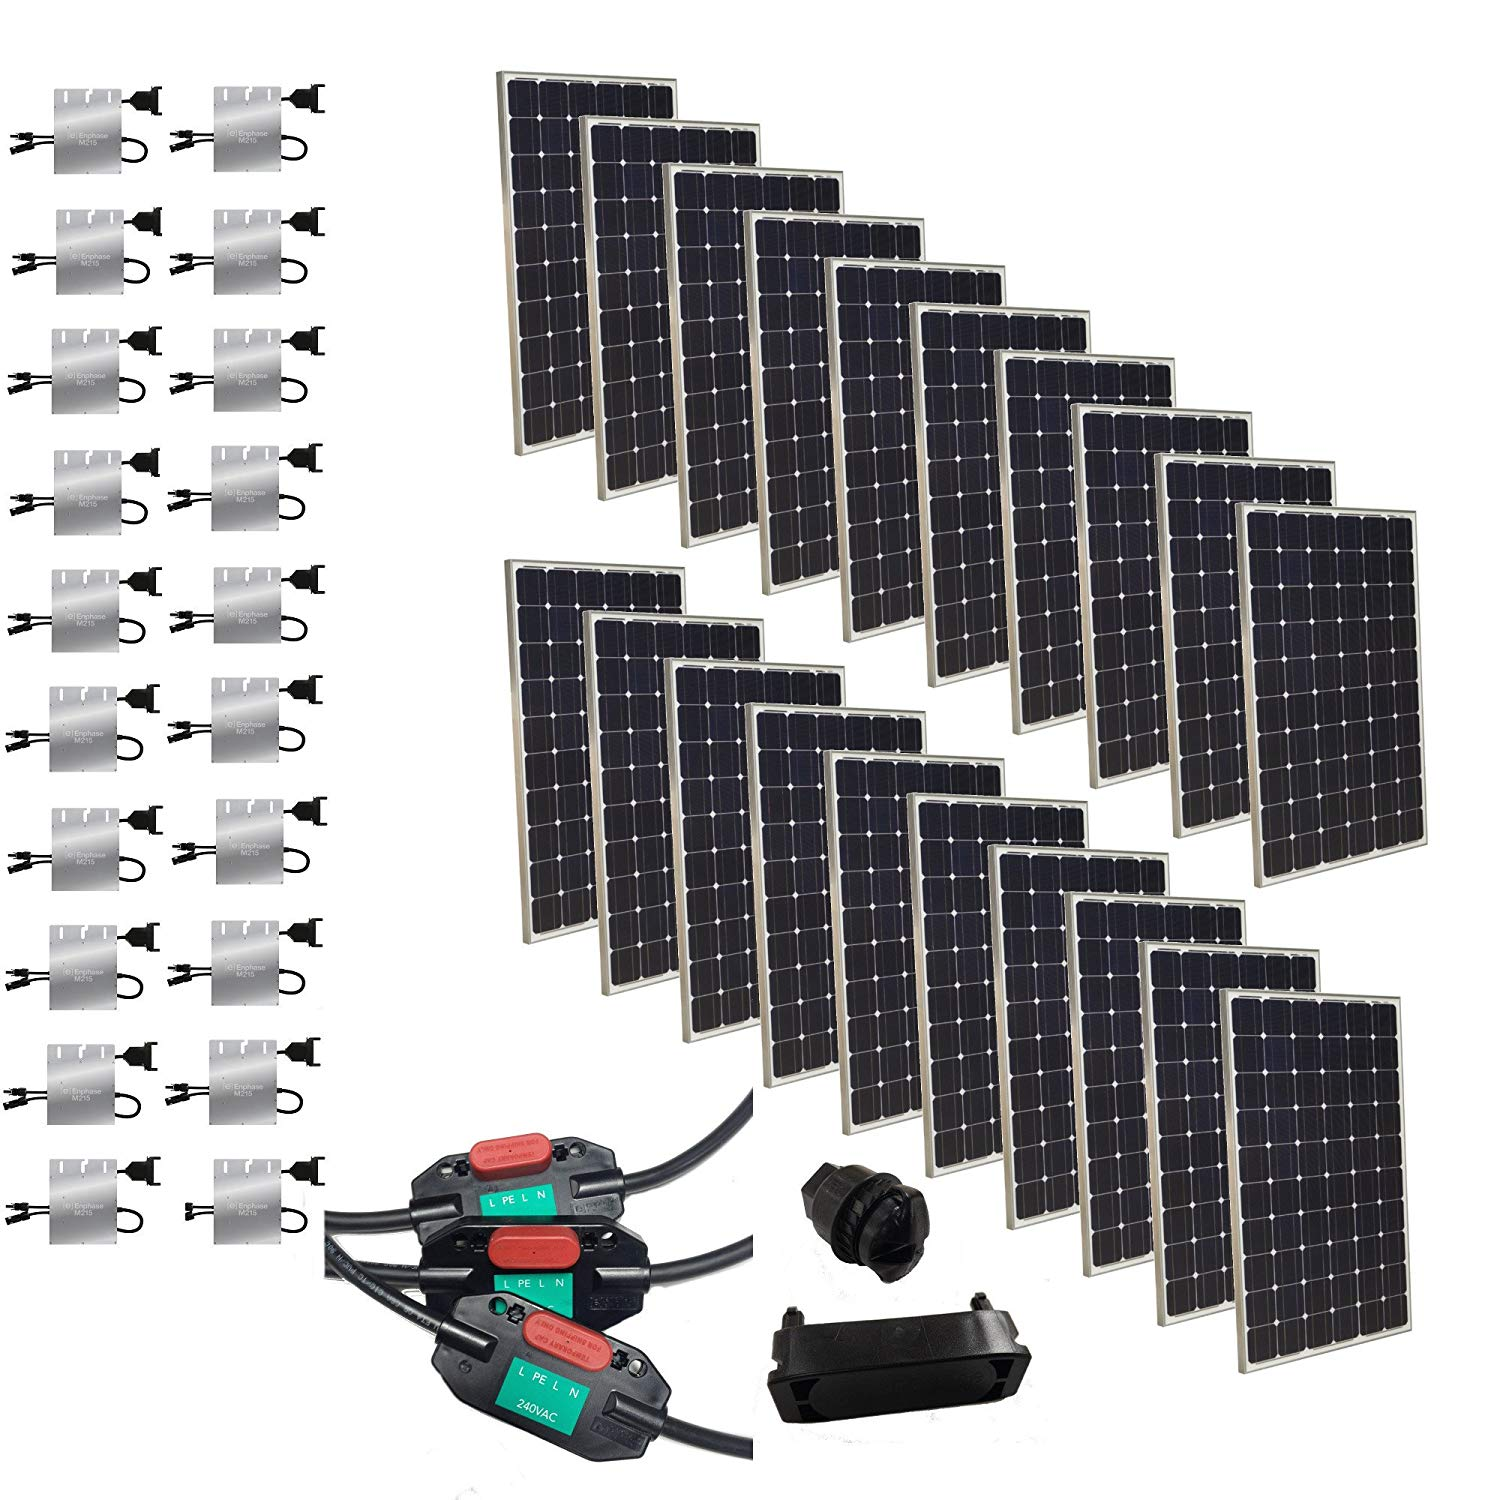 Grape Solar 5300 Watt with Enphase Microinverters